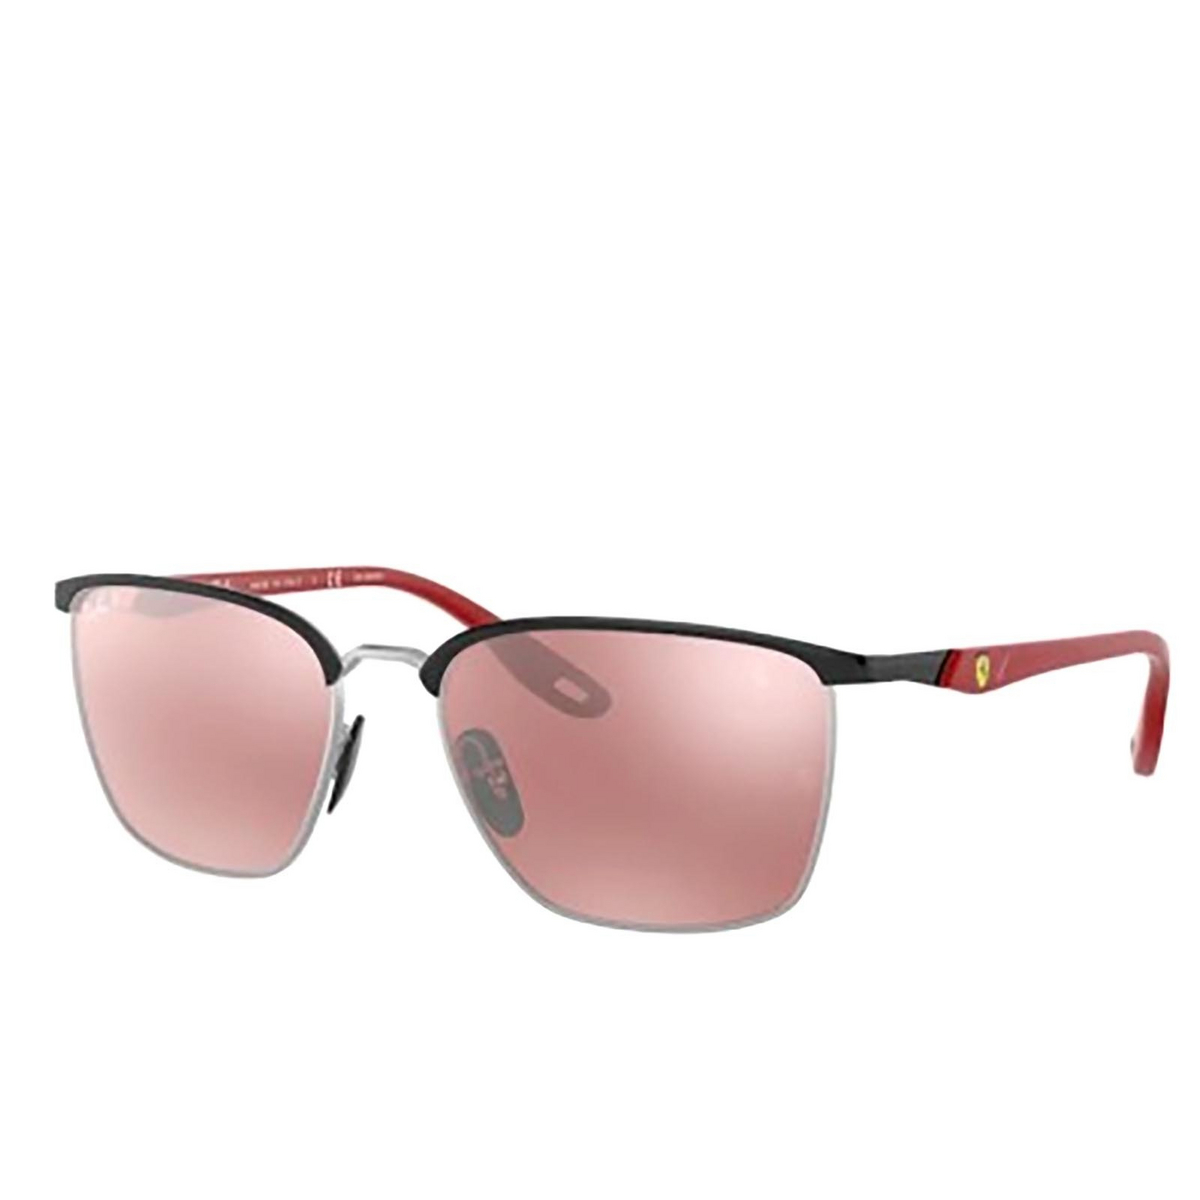 Ray-Ban® Square Sunglasses: RB3673M color Black On Silver F060H2.